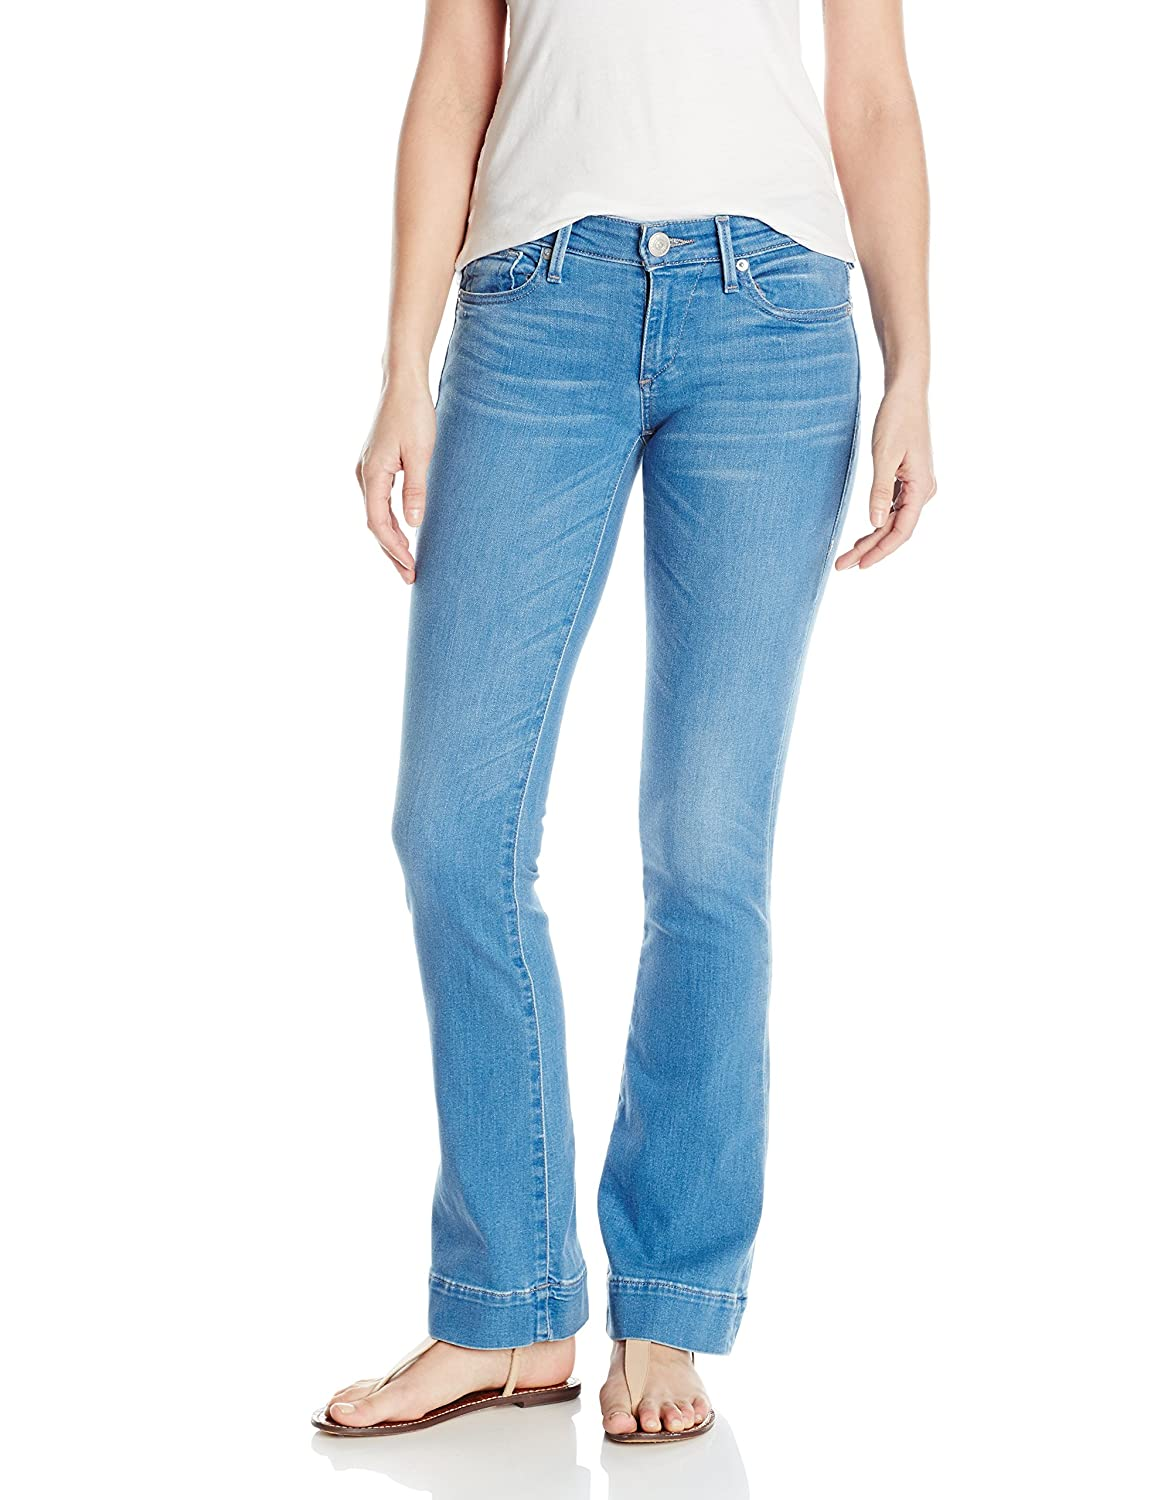 Levi's Women's Mid Rise Skinny Crop Jean, Dutch Blue Rinse, 33 17859-0023